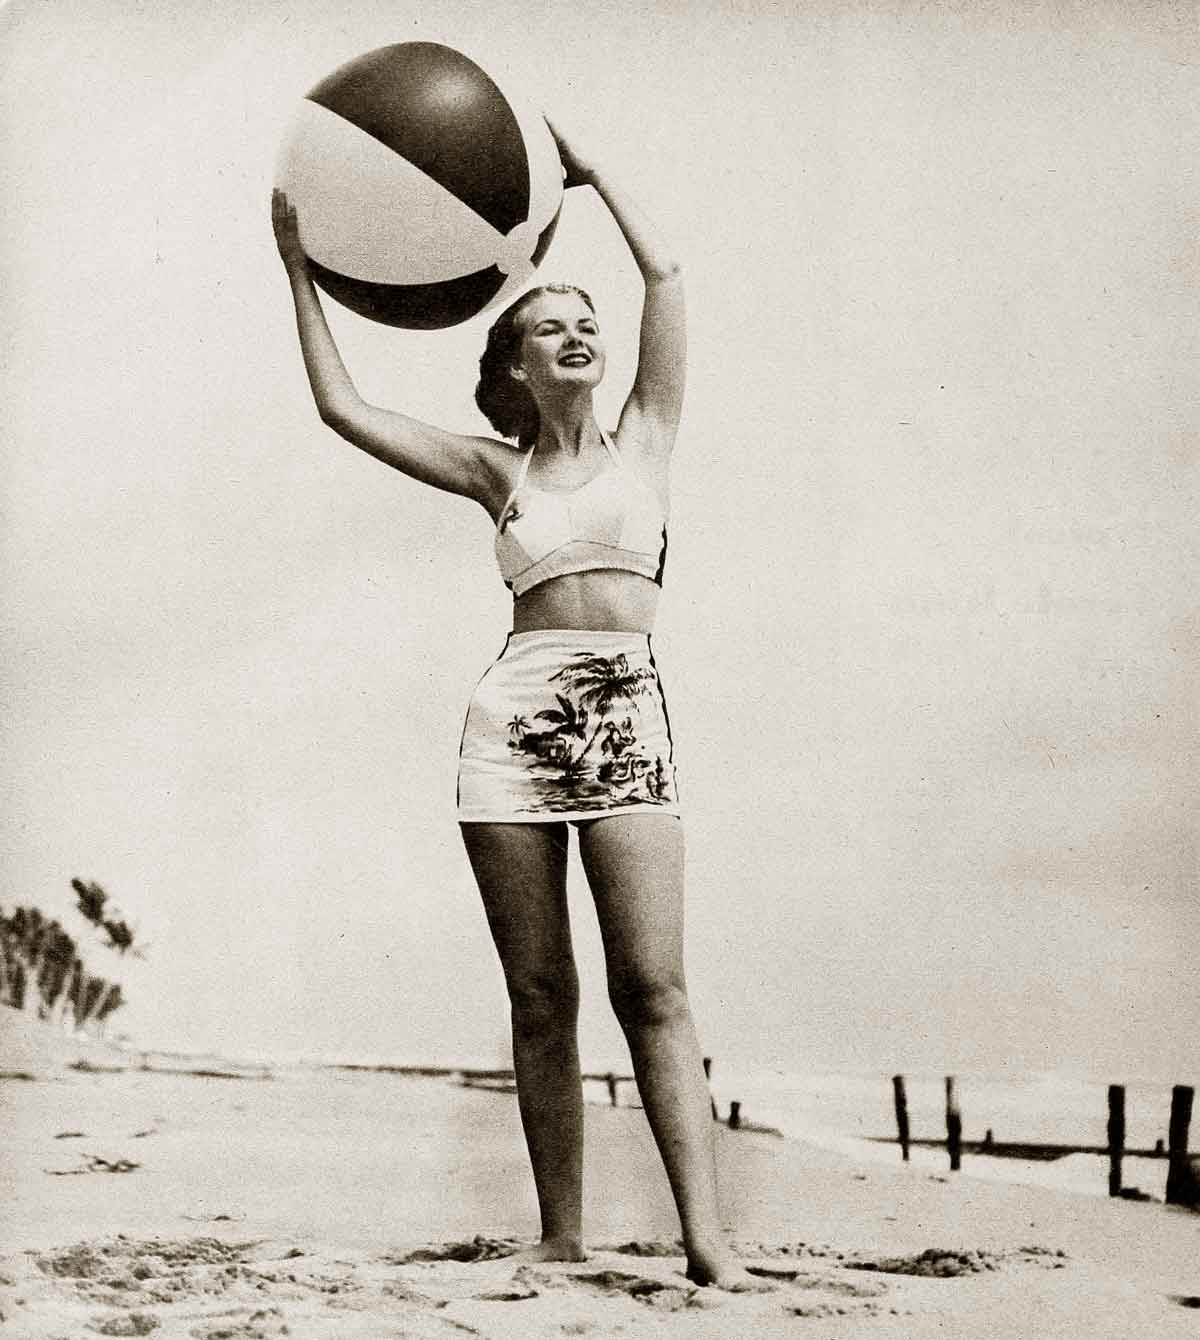 1940s-Fashion---Summer-Frock-and-Swimsuit-Styles-8